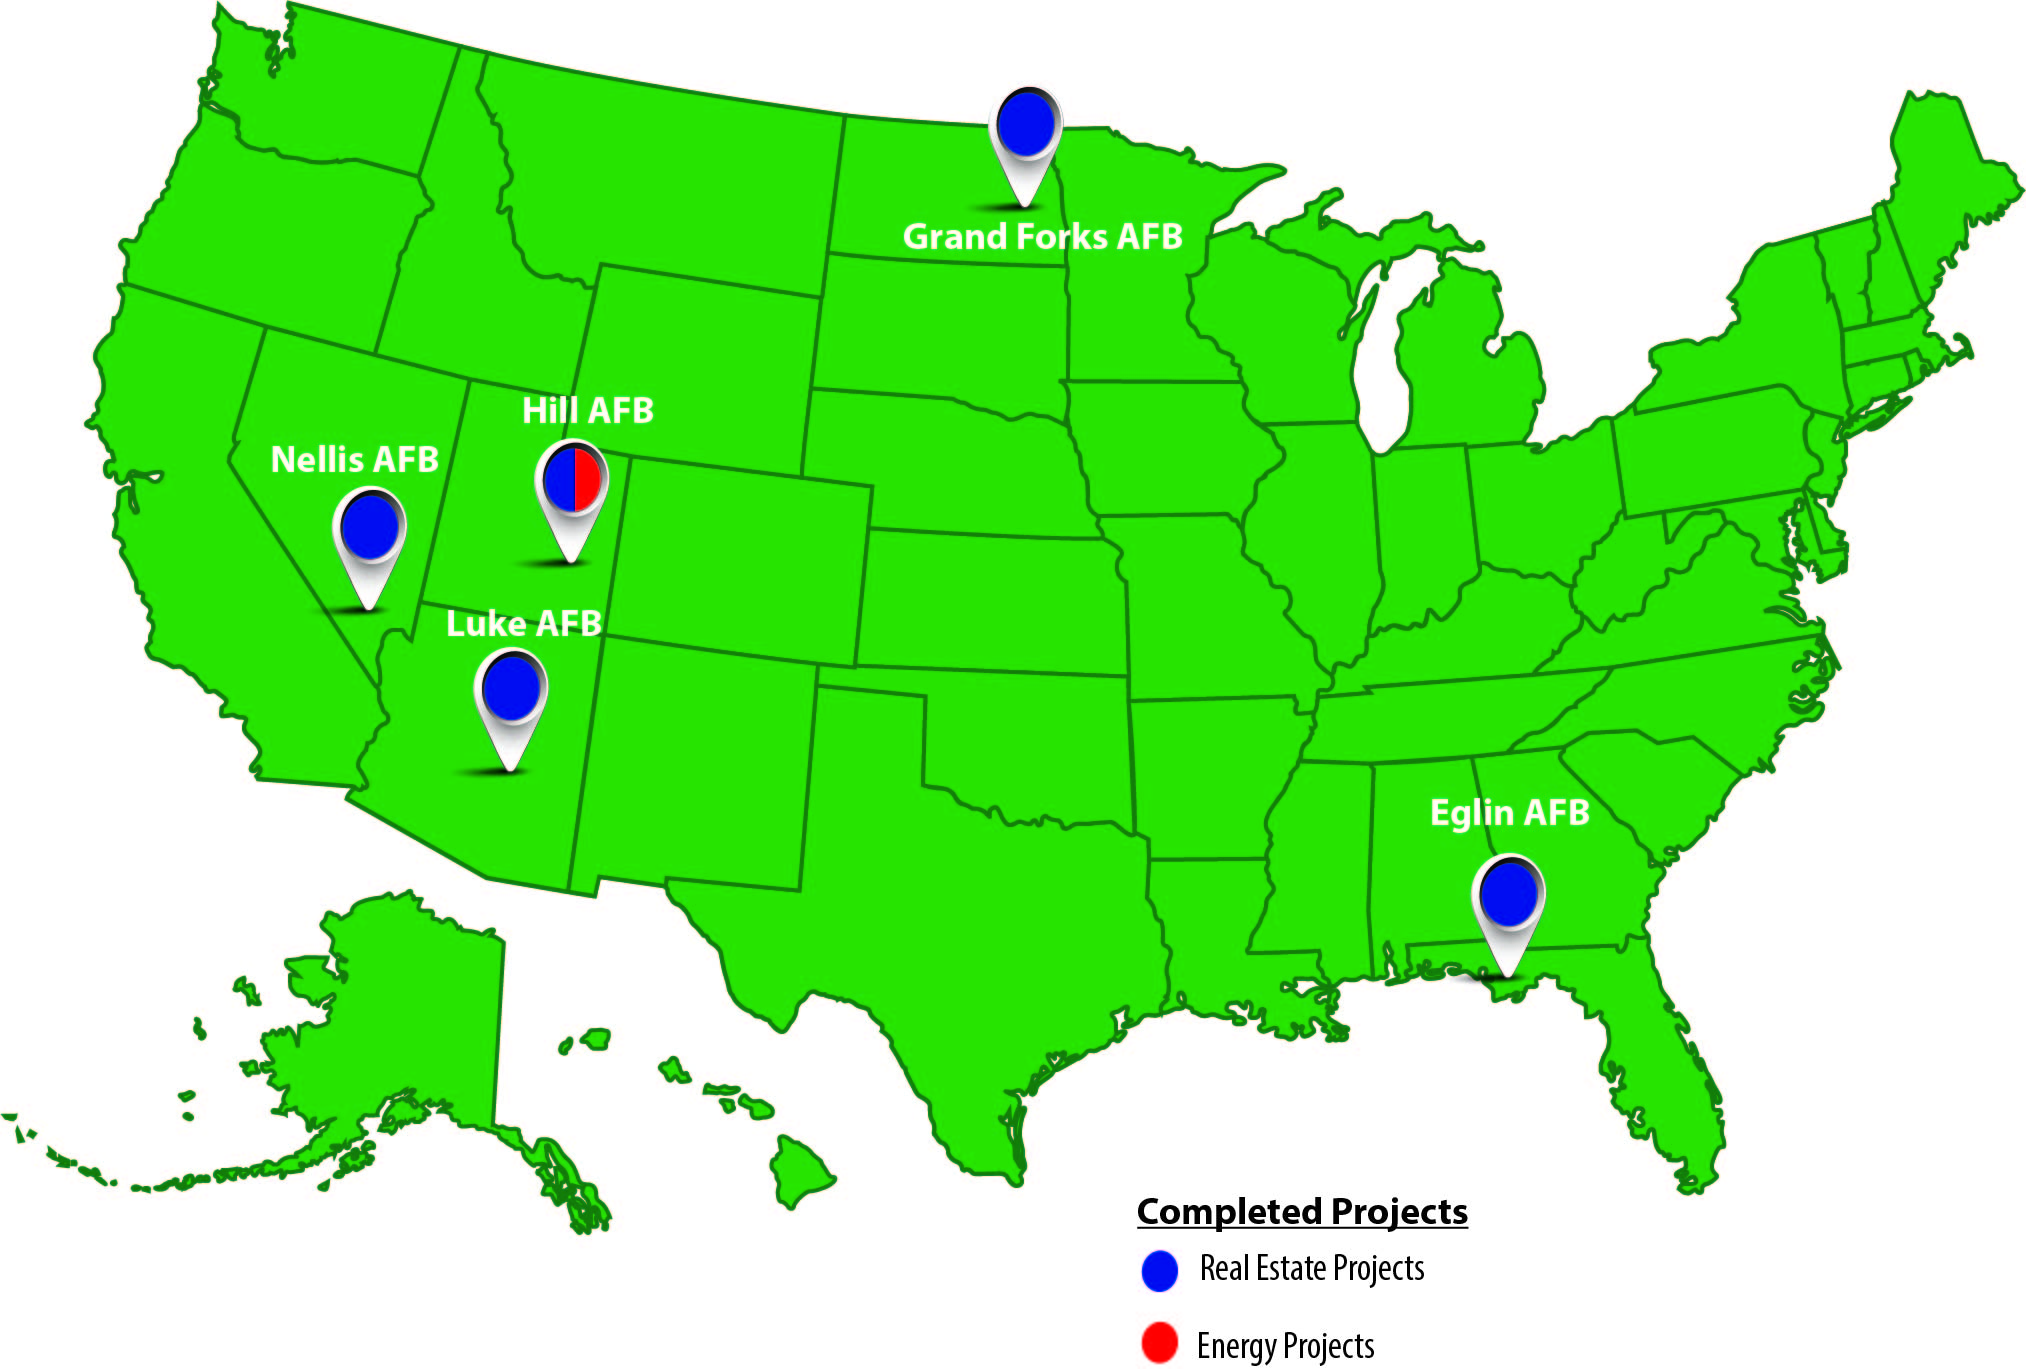 Map of completed projects